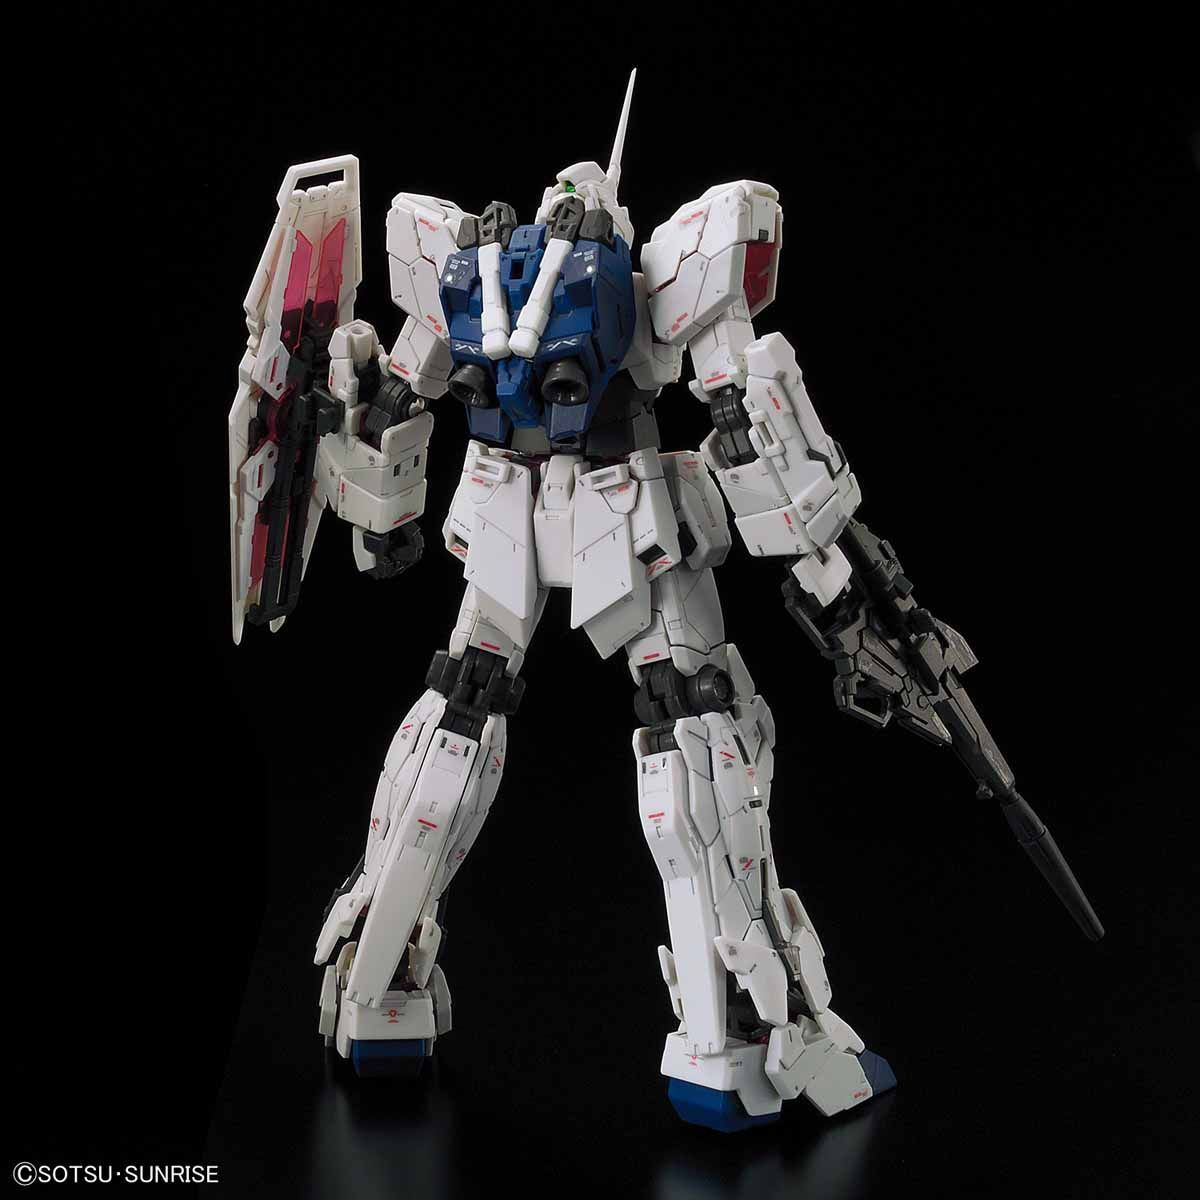 RG 1/144 RX-0 Unicorn Gundam - model Kit image